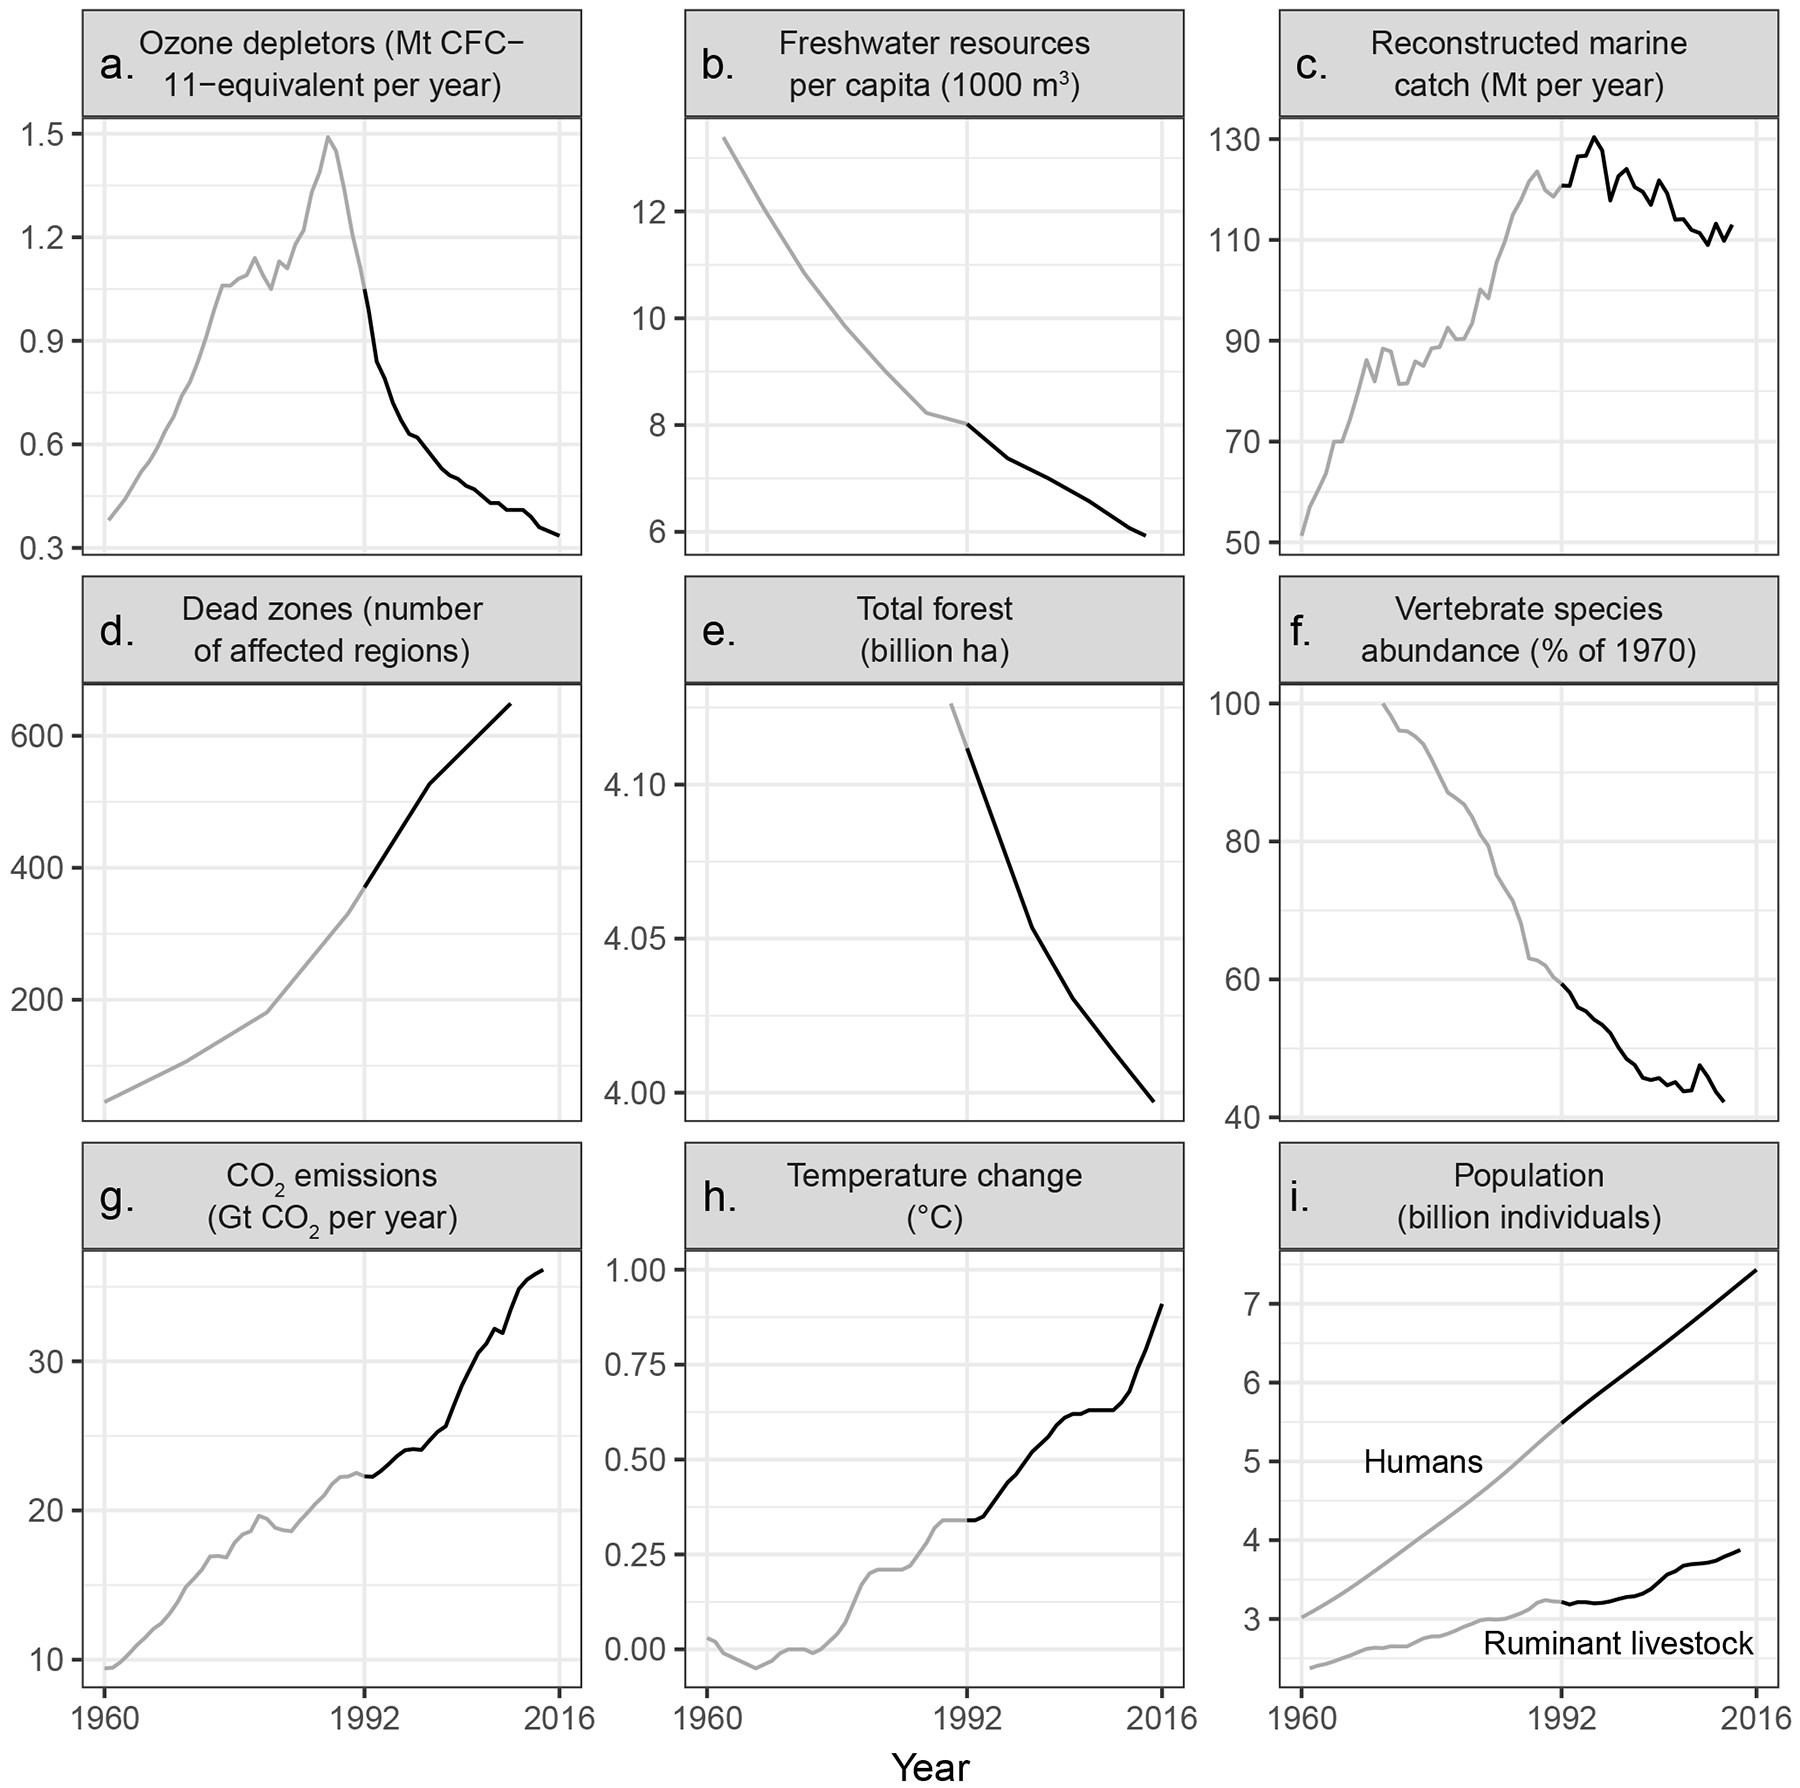 Trends over time for environmental issues identified in the 1992 scientists' warning to humanity (grey line), updated with data up to 2016 (black line)